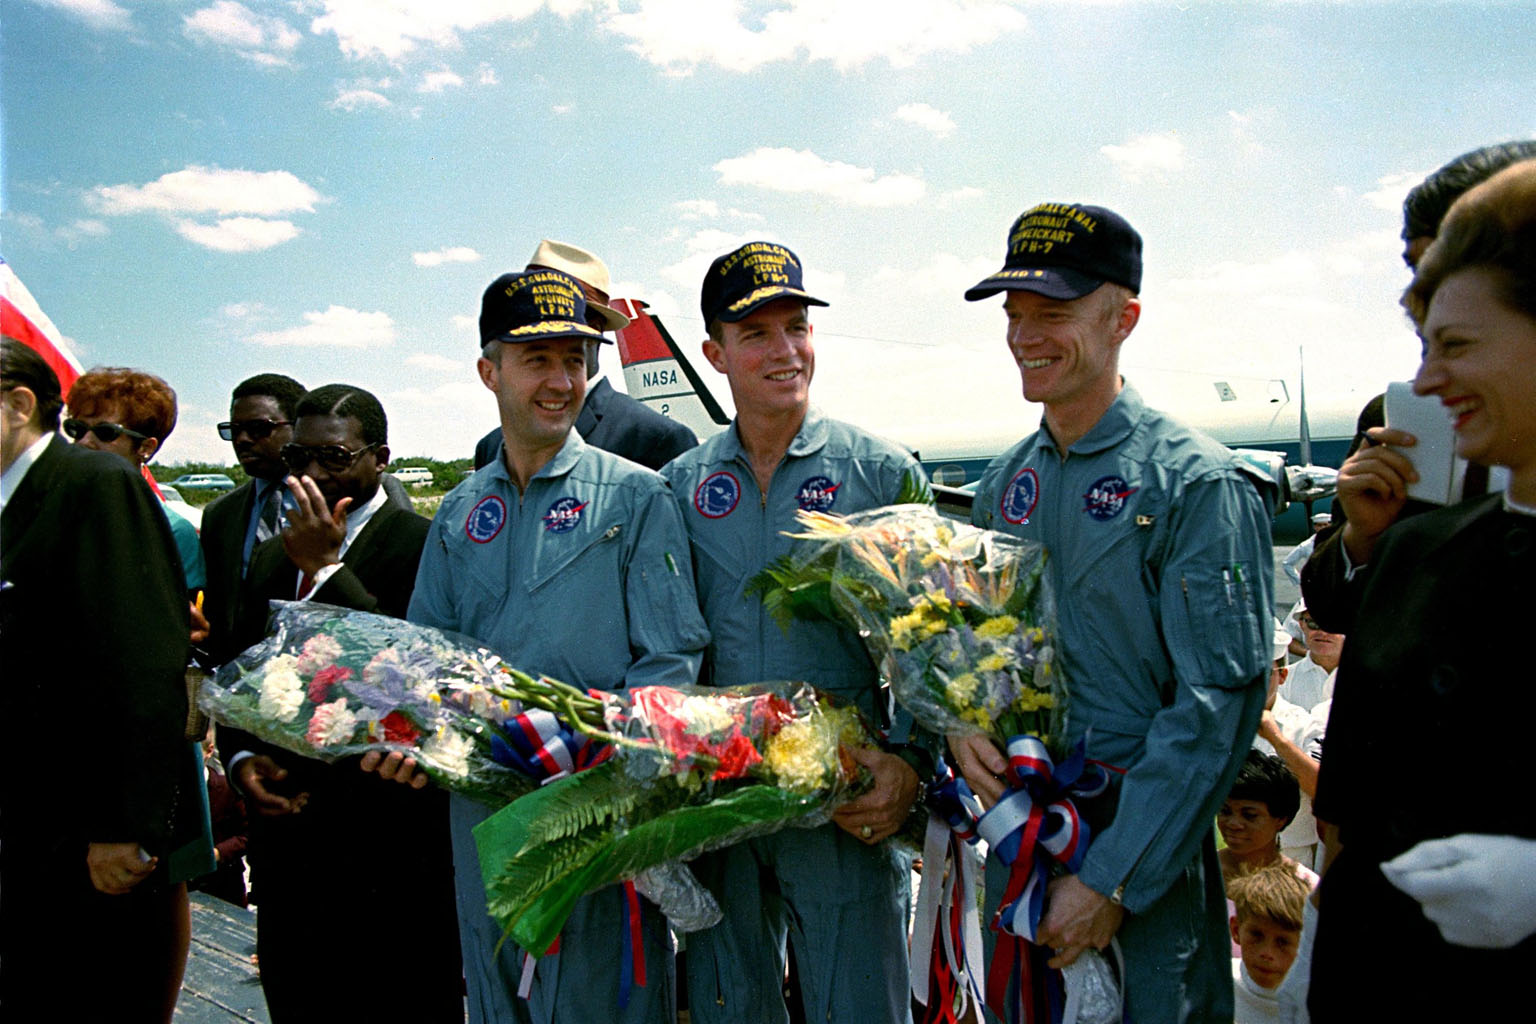 KENNEDY SPACE CENTER, FLA. - The Apollo 9 astronauts, left to right, James R. McDivitt, David R. Scott, and Russell L. Schweickart, receive flowers during a brief stopover on this Bahamian island while enroute back to Cape Kennedy. The three astronauts were launched from Cape Kennedy on March 3 from Launch Pad 39A and spent 10days in Earth orbit to test the Lunar Module Spacecraft in preparation for the upcoming manned lunar landings. Following their splashdown yesterday about 780 nautical miles southeast of Cape Kennedy, the three astronauts and their spacecraft were picked up by the USS Guadalcanal.